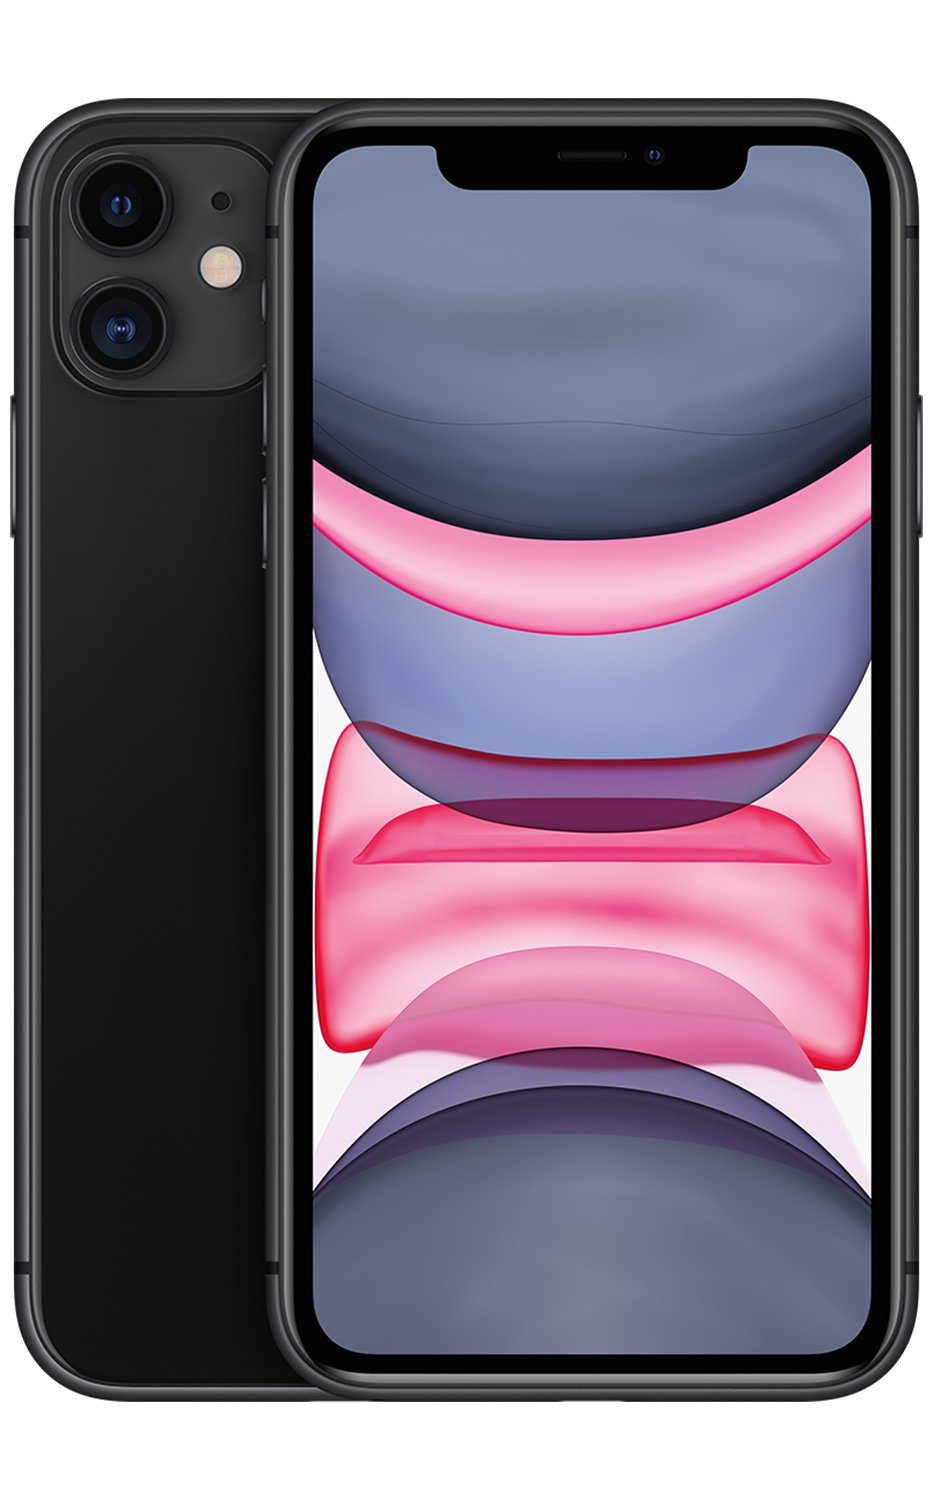 Apple Iphone 11 6 Colors In 64gb 256gb 128gb T Mobile T Mobile Phones Free Iphone Iphone 11